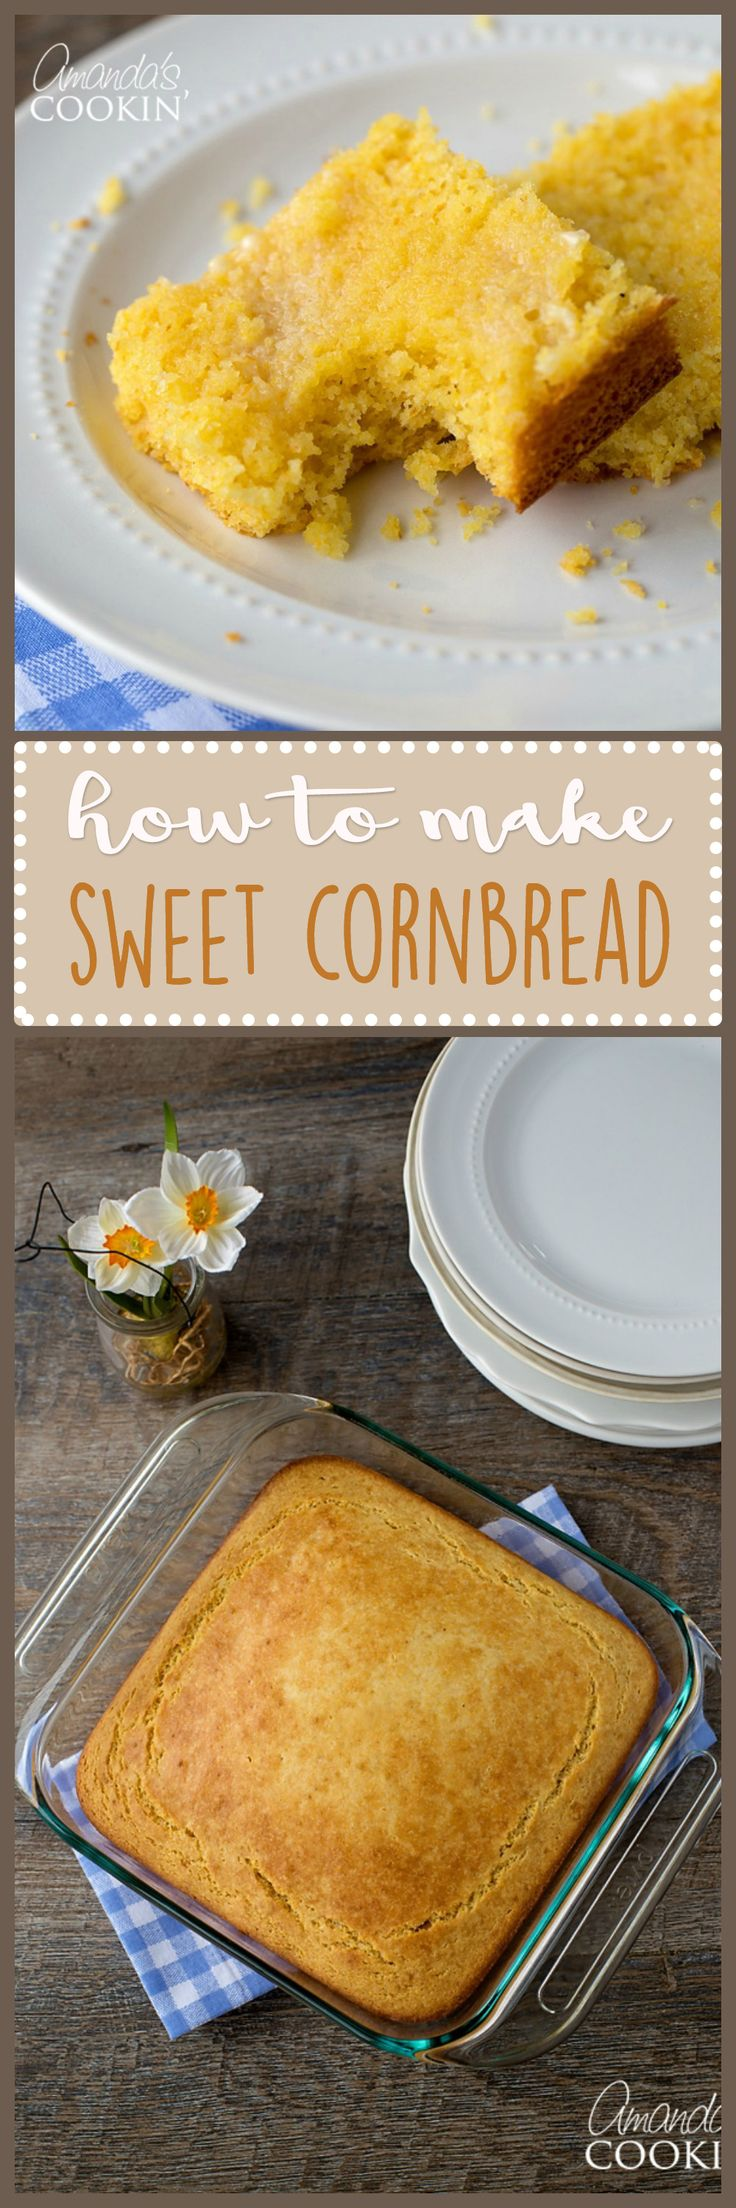 This sweet cornbread pairs great alongside a bowl of Chili Mac or regular Chili. Being everyone's favorite, this sweet cornbread recipe won't disappoint!